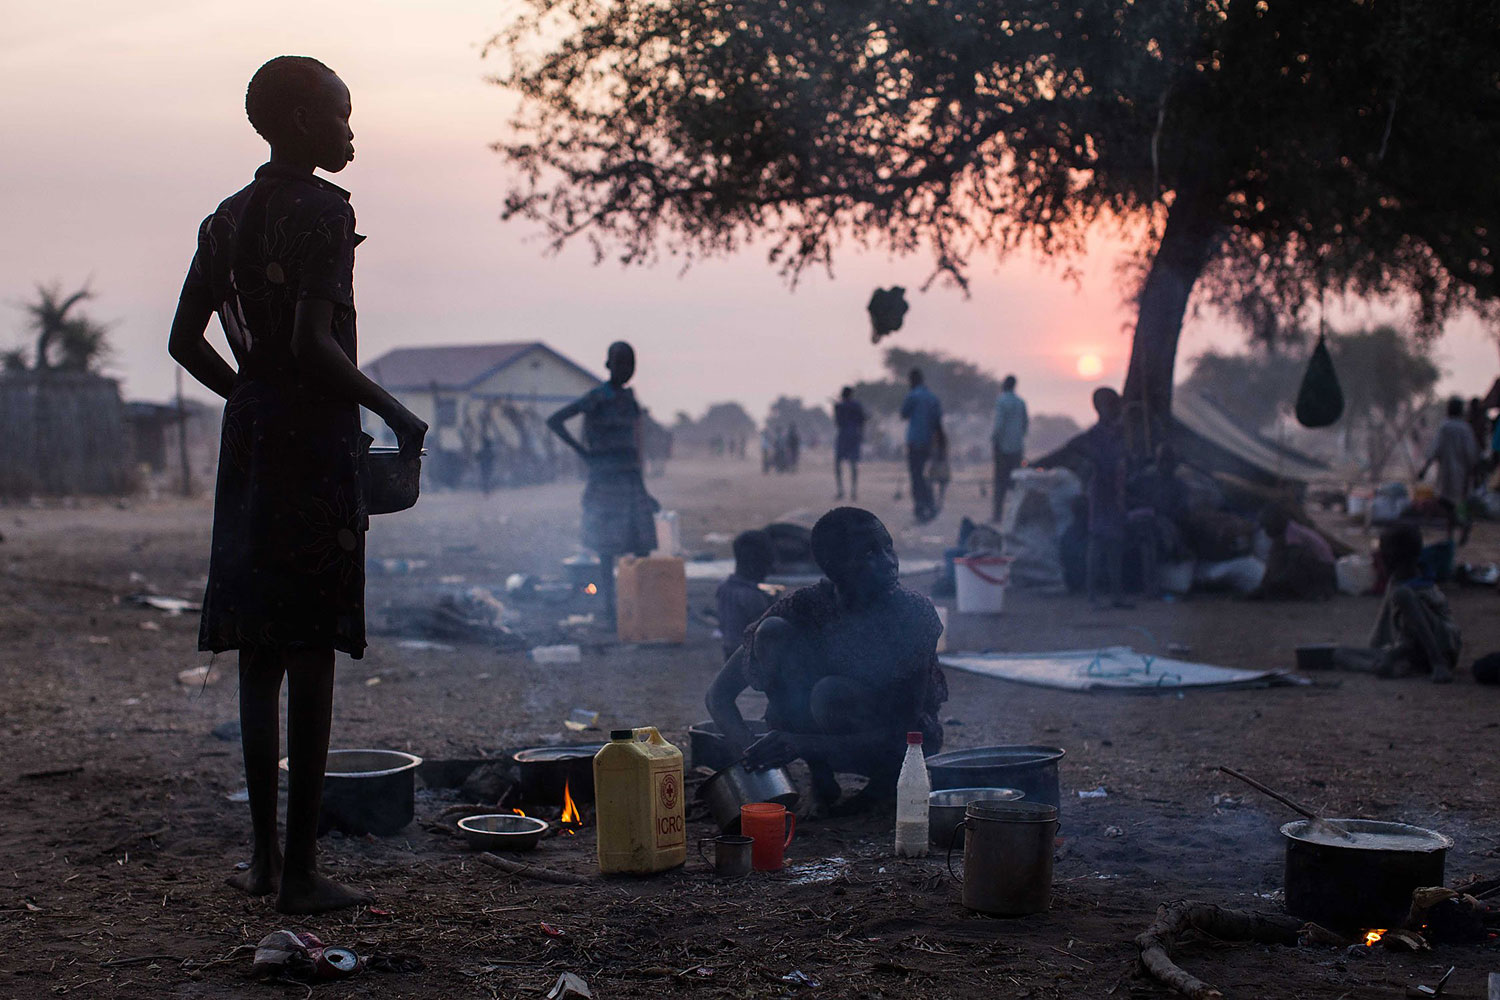 People go about their daily life in Minkammen, 16 miles south of Bor, on Jan. 8, 2014.